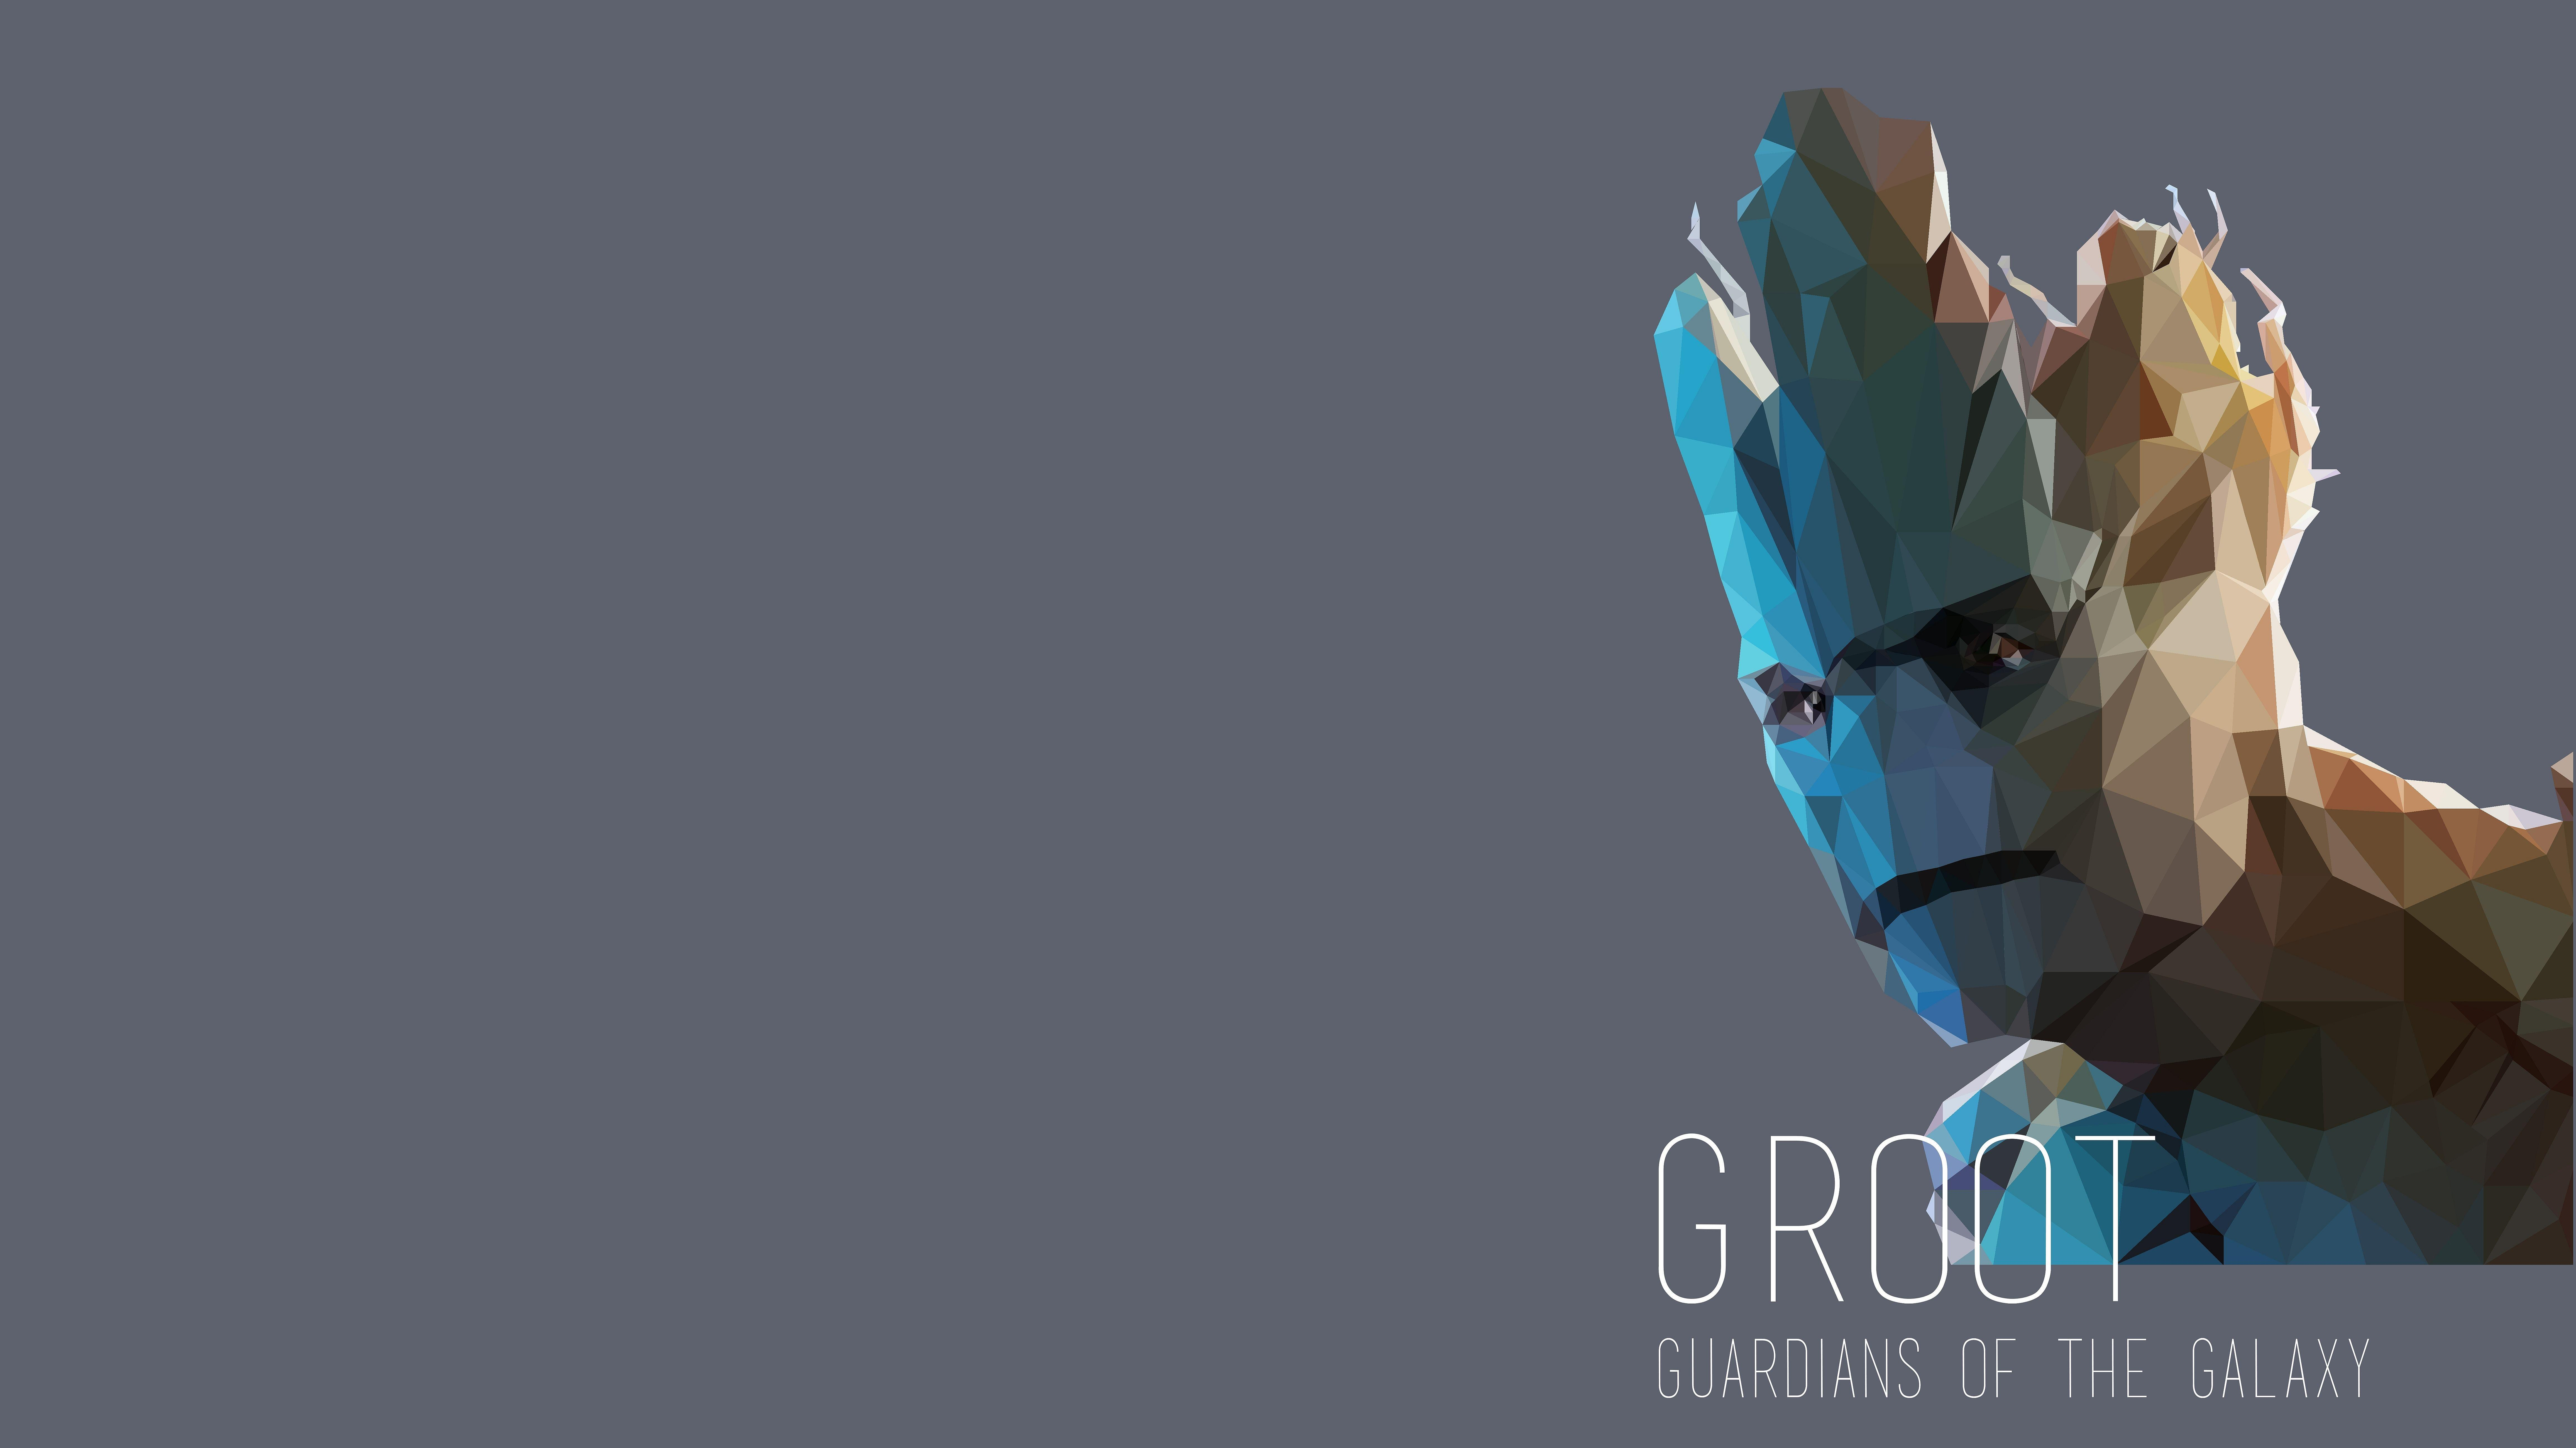 156 Guardians Of The Galaxy HD Wallpapers | Backgrounds ...